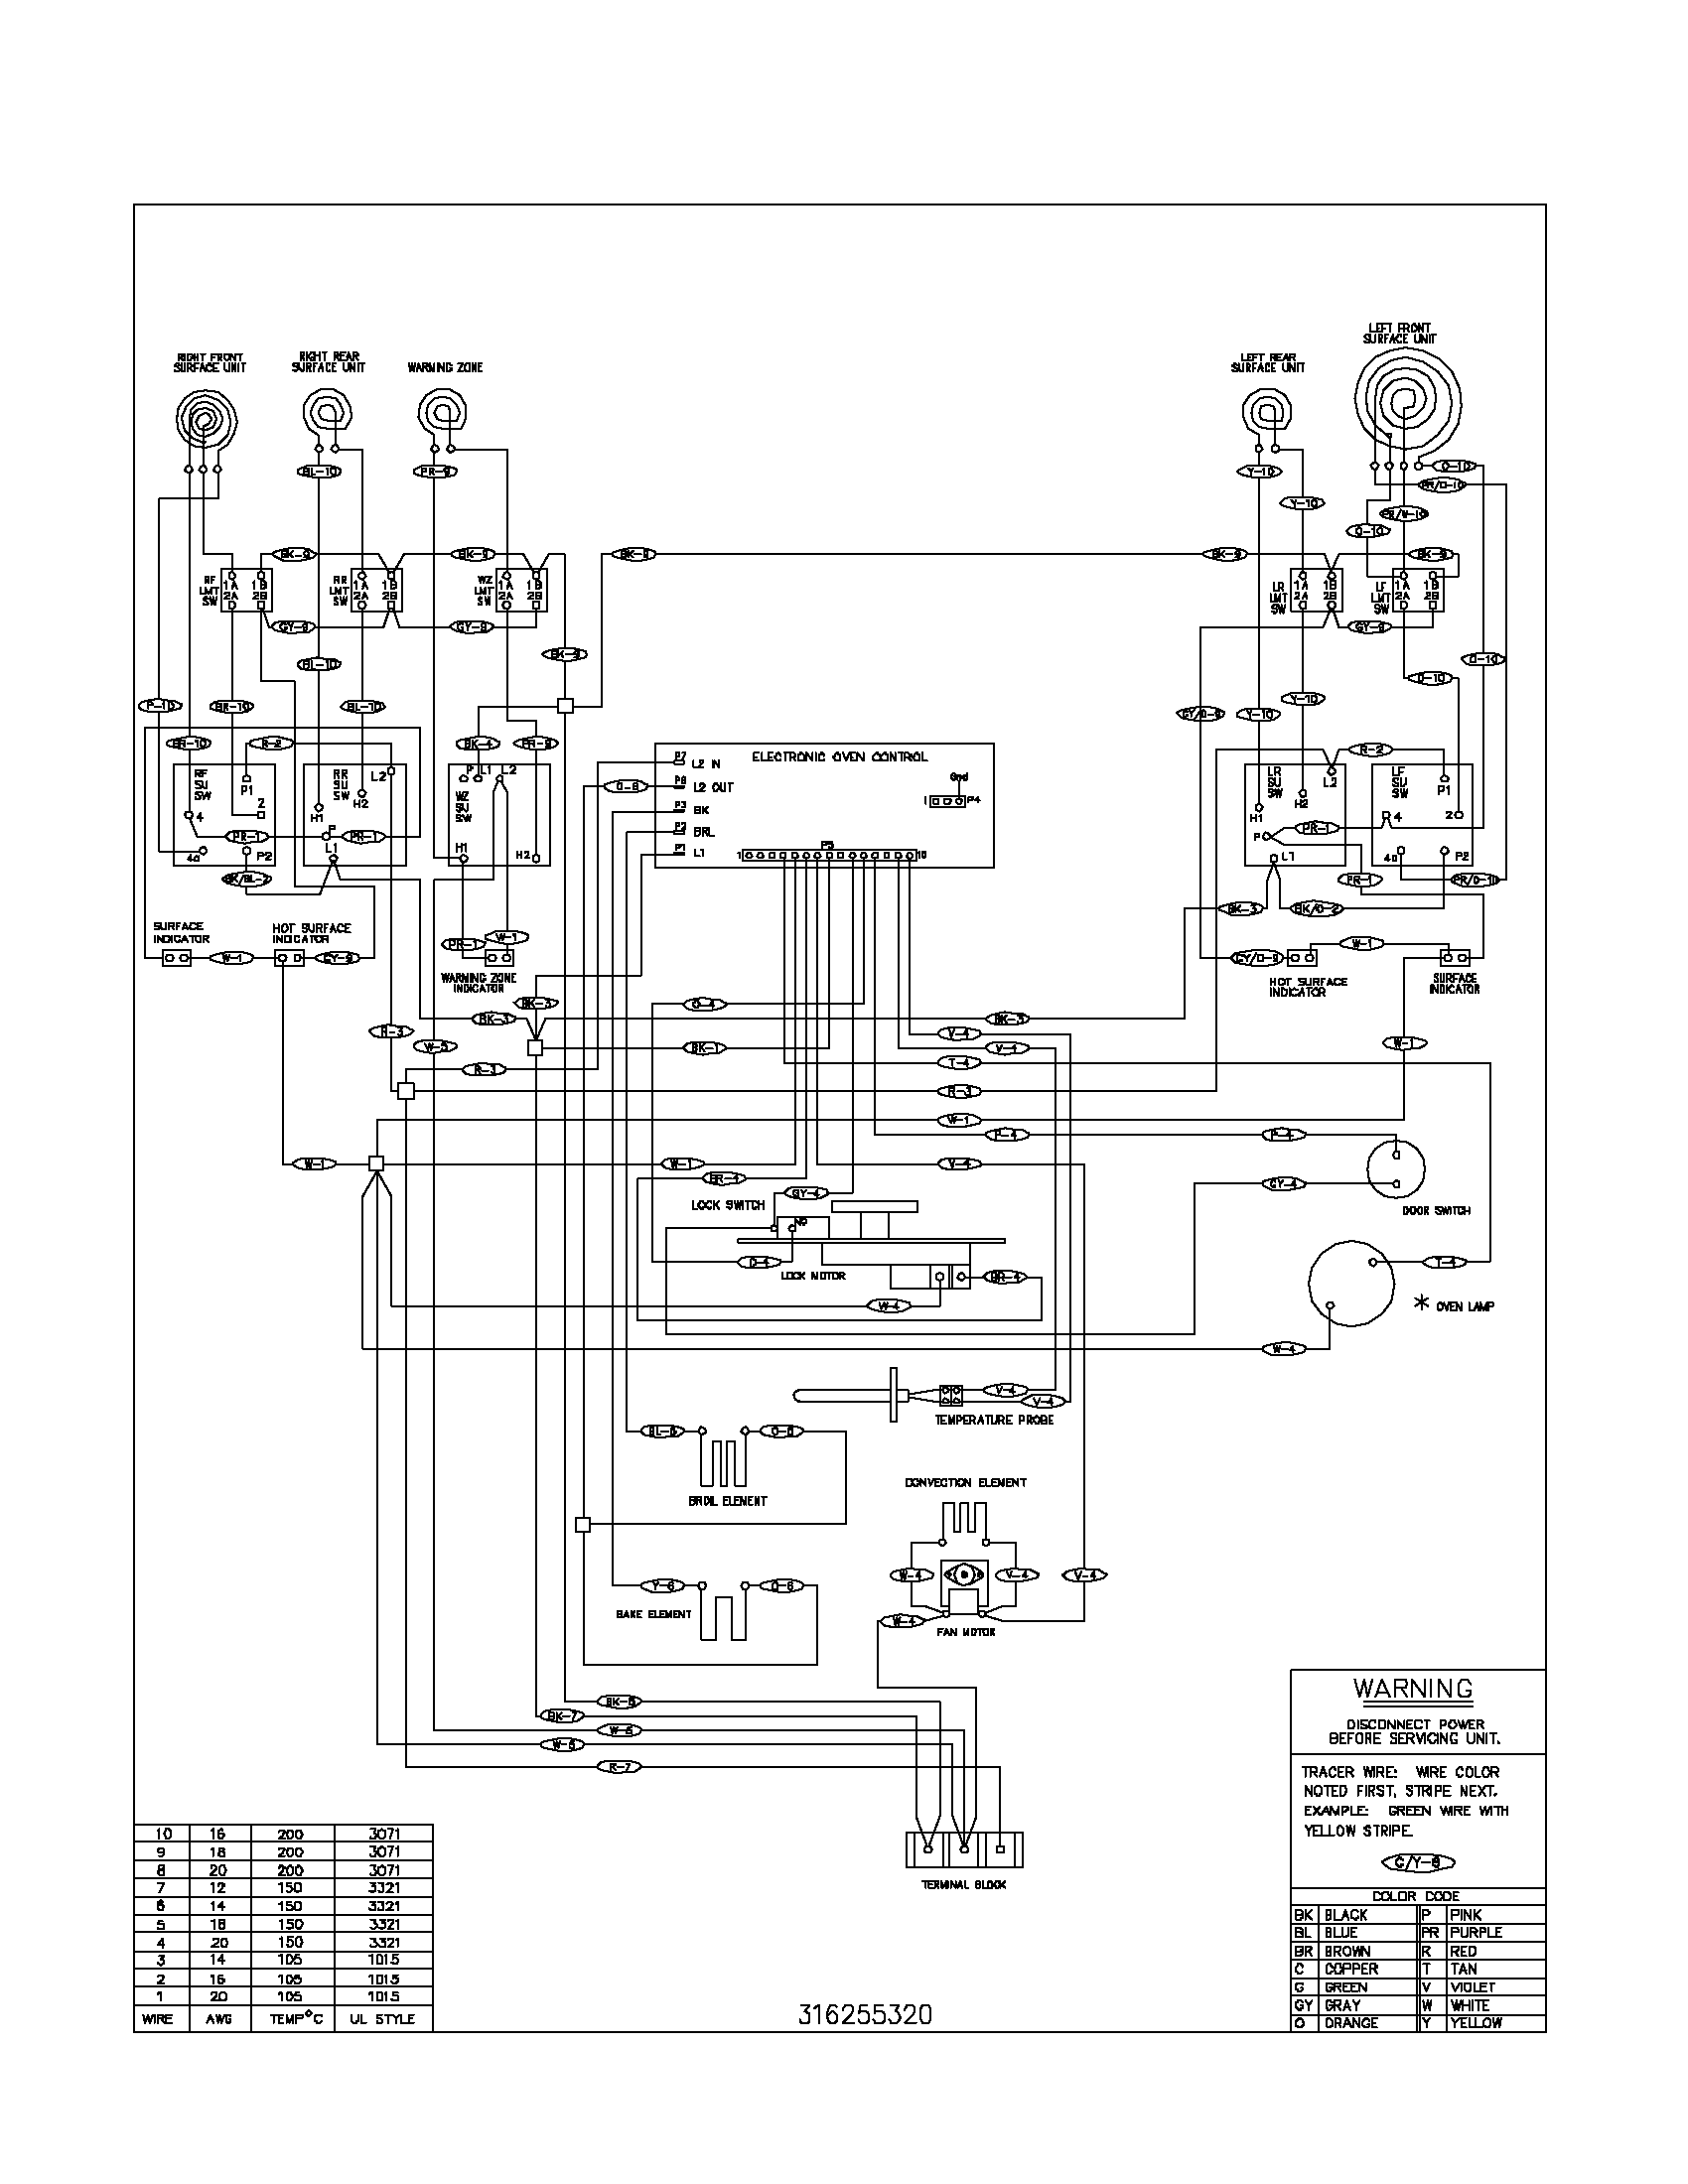 wiring diagram parts whirlpool fefl88acc electric range timer stove clocks and ge range wiring diagram at bakdesigns.co